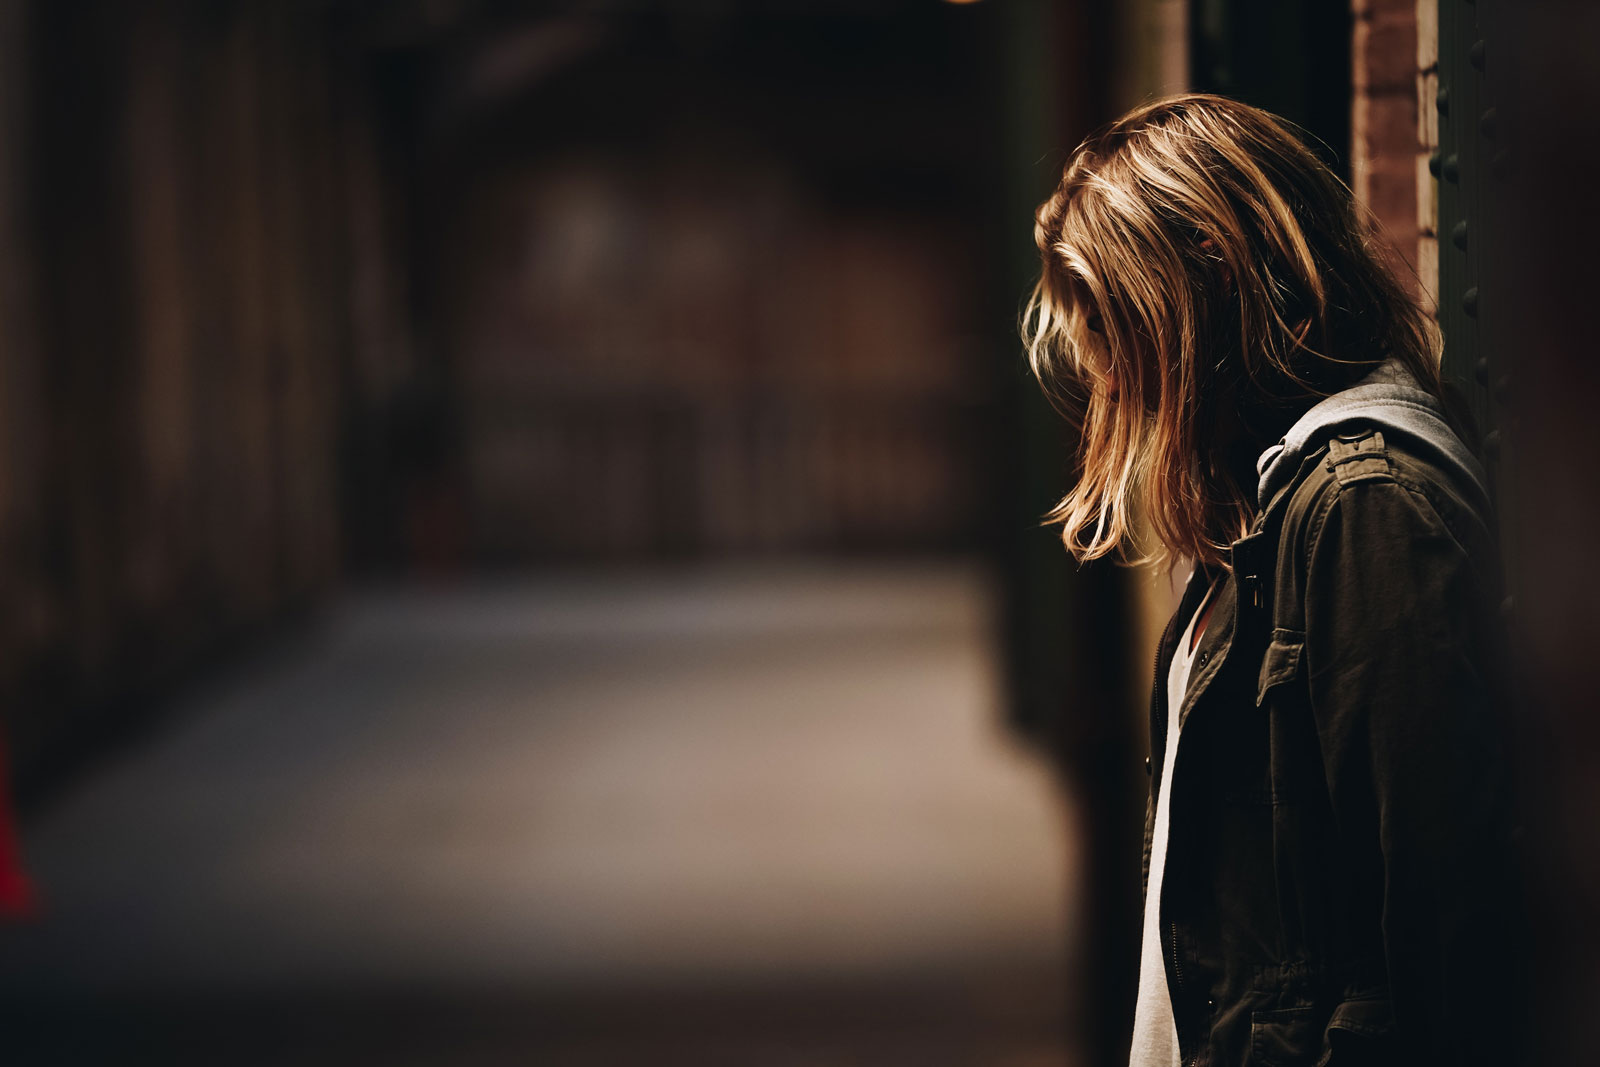 woman standing in a dark alley with head down in saddness